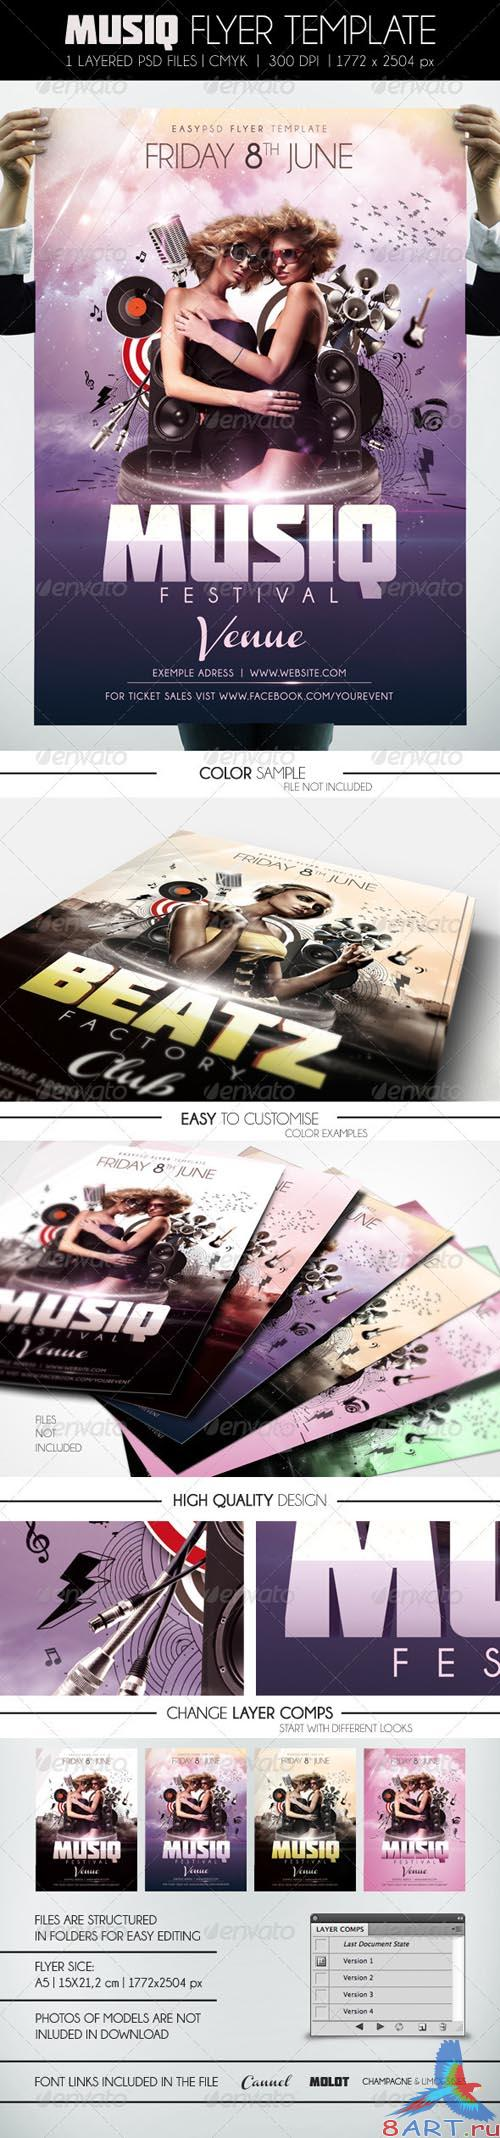 GraphicRiver Musiq Flyer Template - REUPLOAD